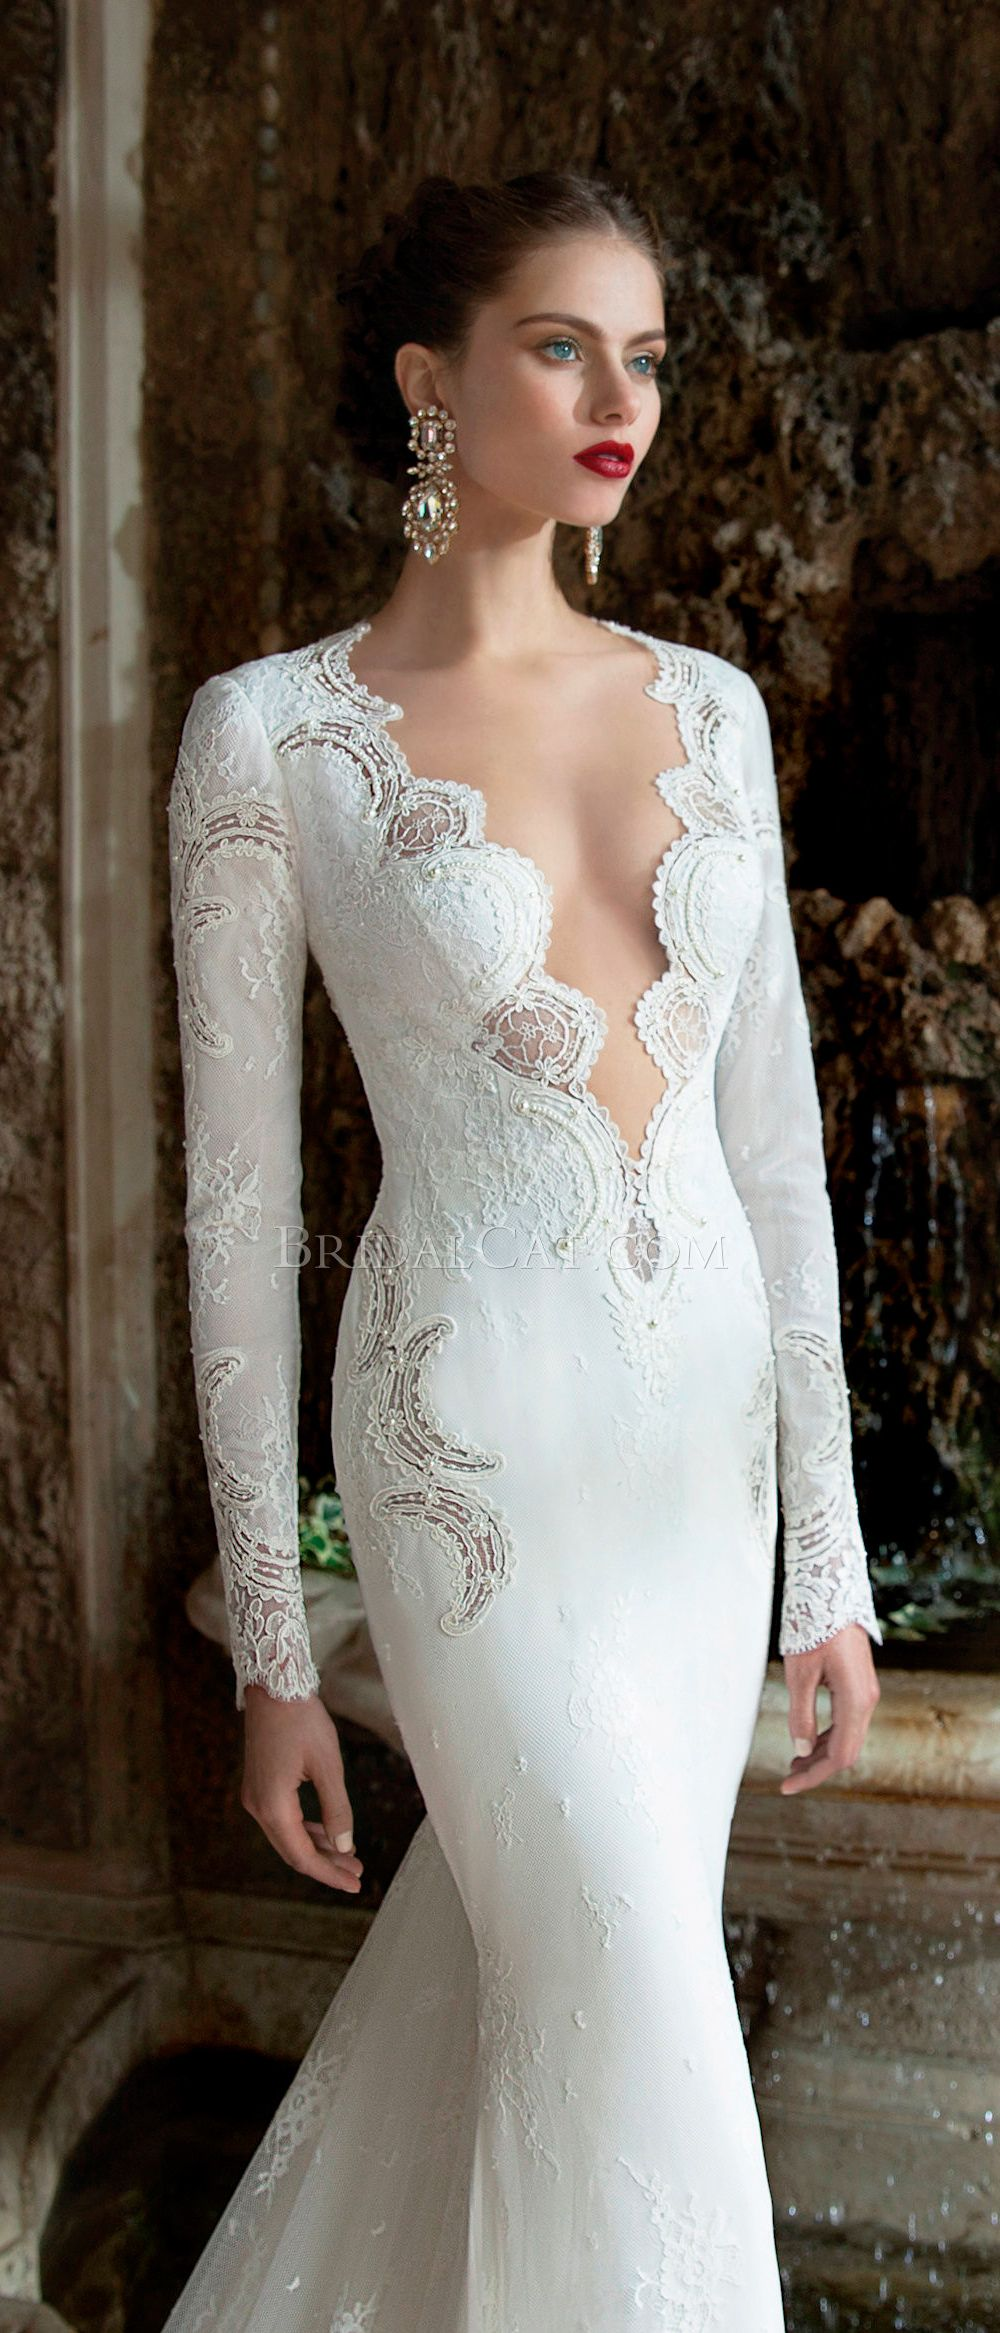 How much are berta wedding dresses  Berta Bridal   moda  Pinterest  Berta bridal Wedding dress